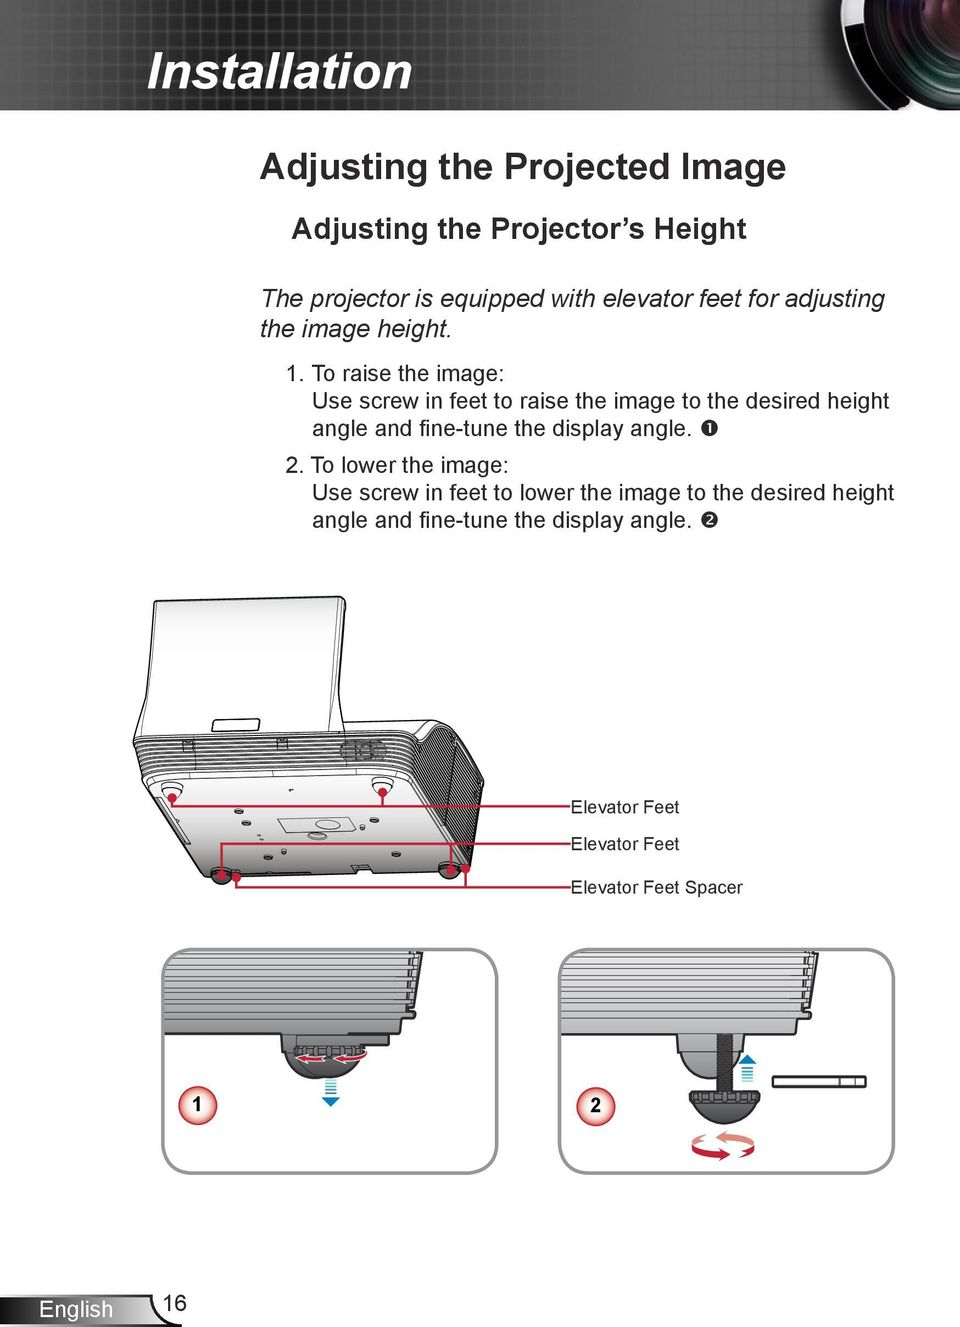 To raise the image: Use screw in feet to raise the image to the desired height angle and fine-tune the display